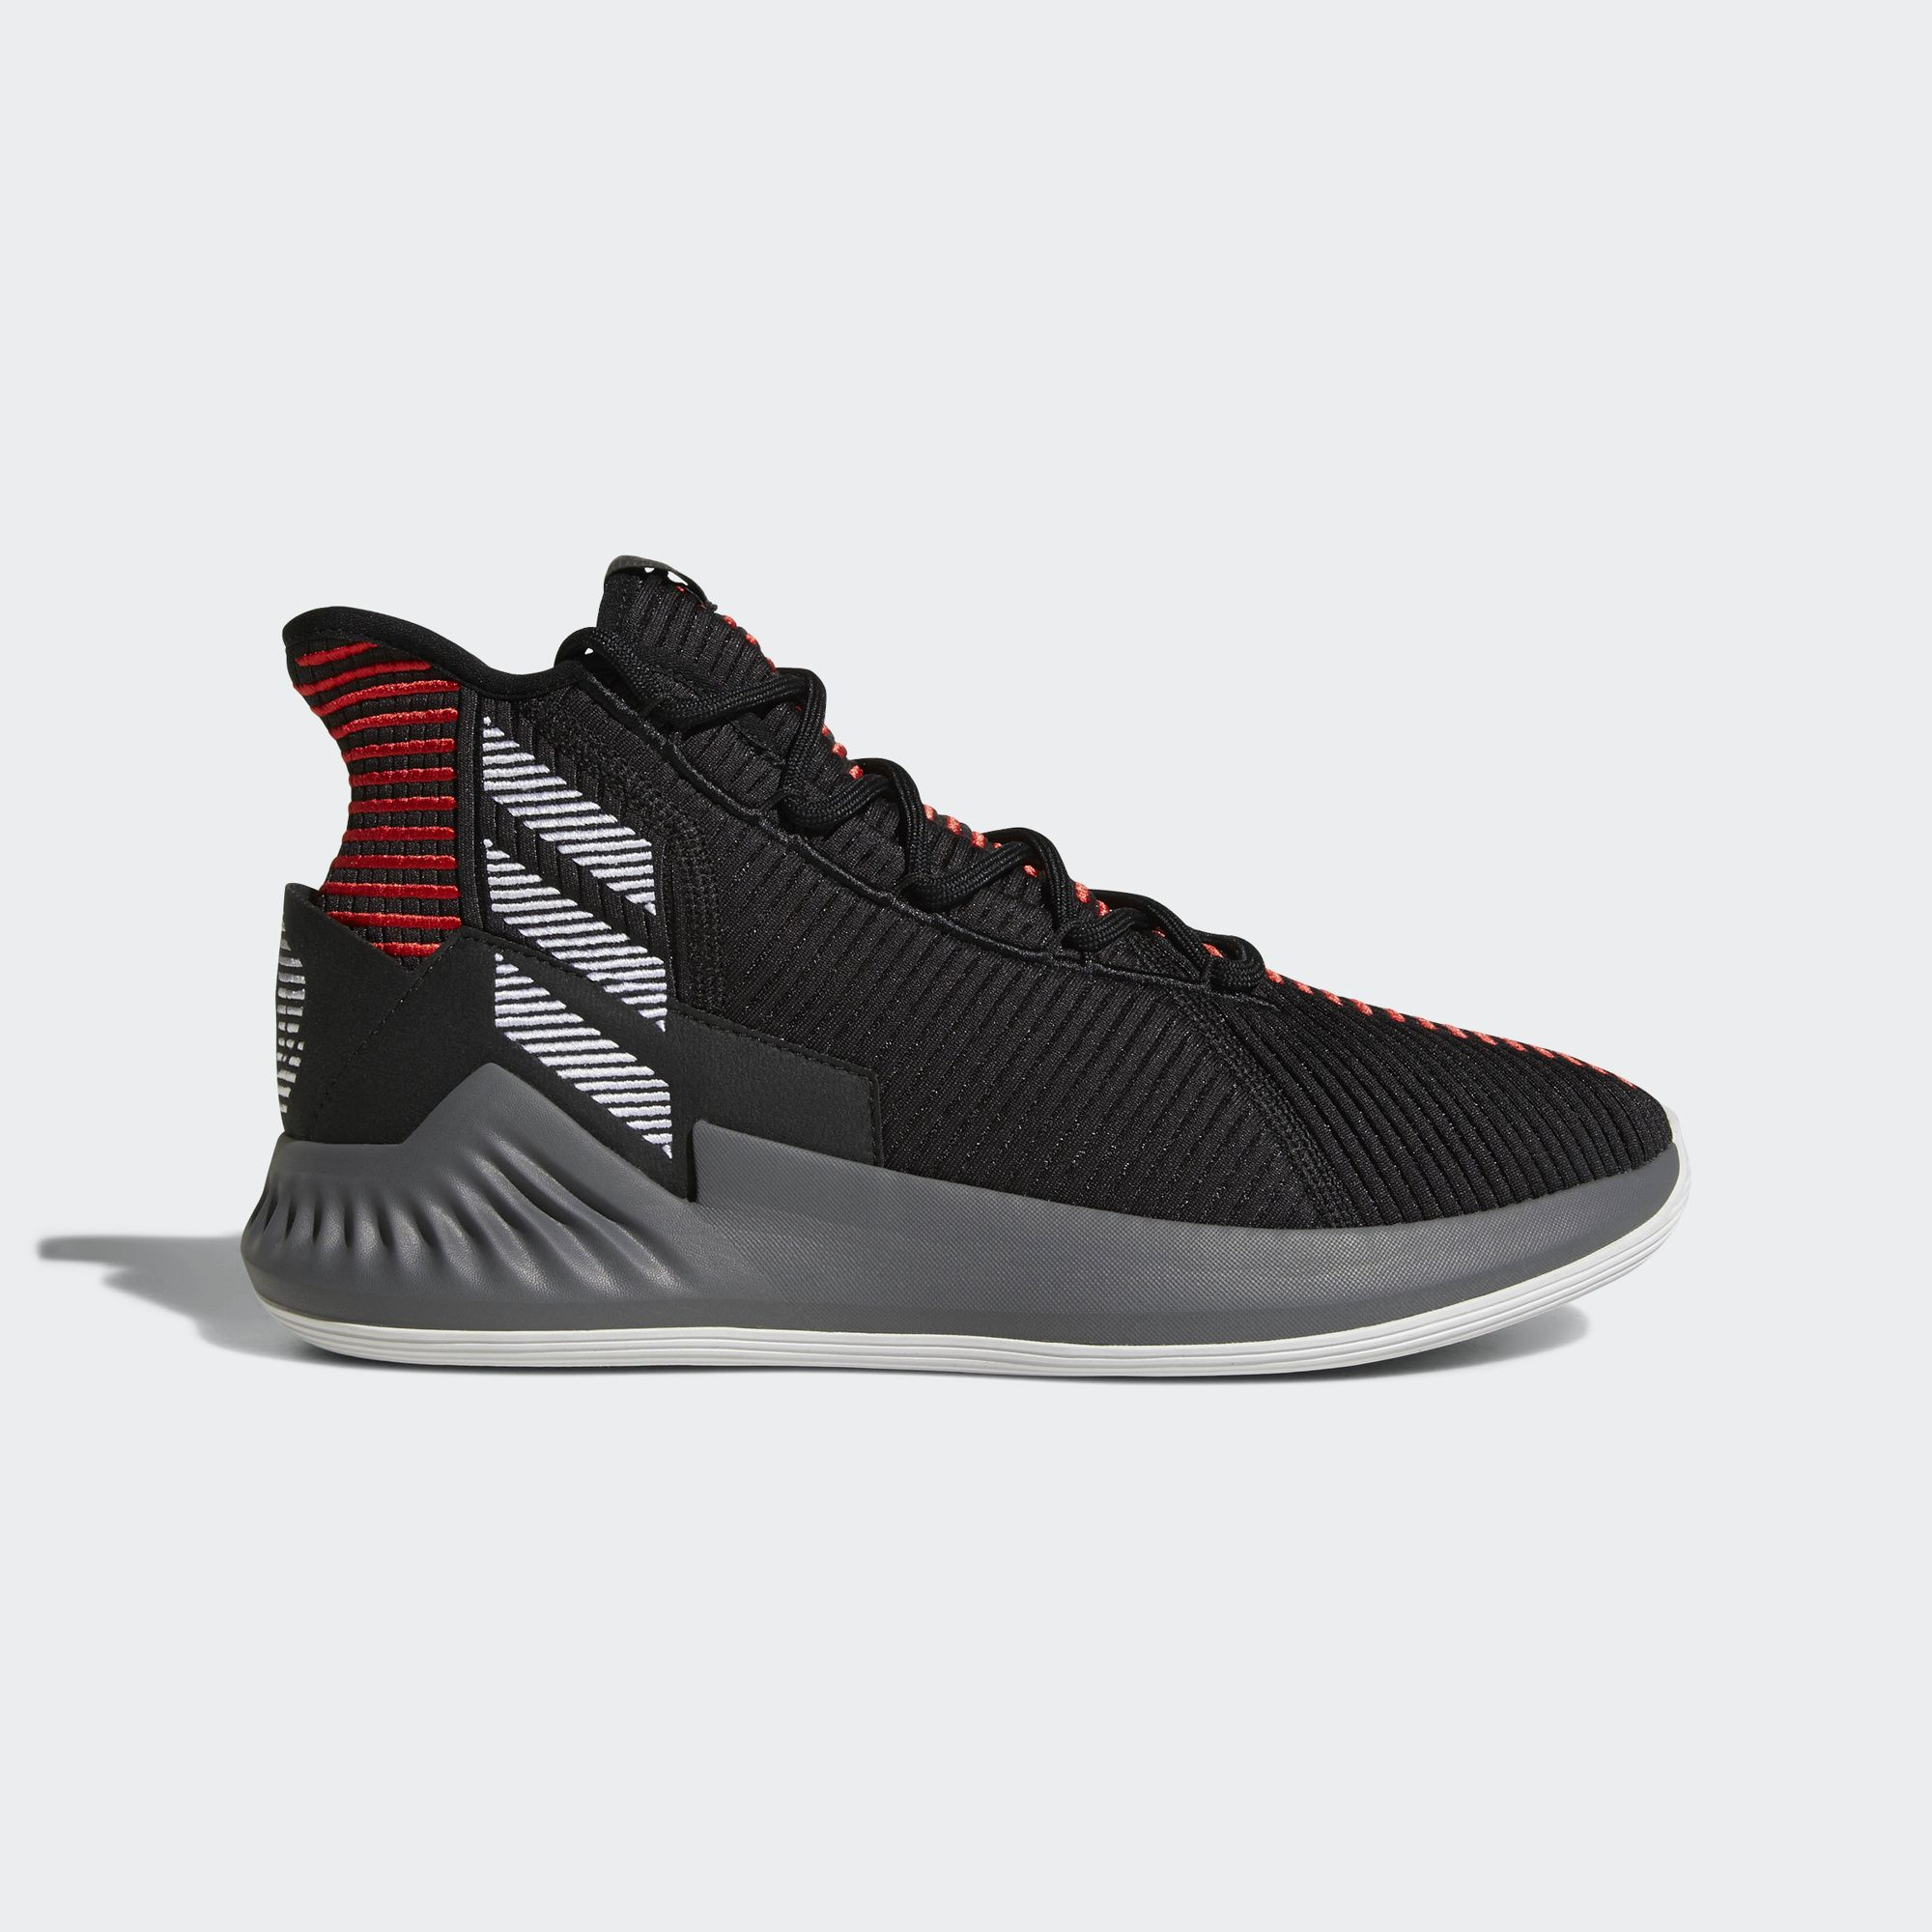 6ae1b4413fa4 Another Look at the adidas Rose 9